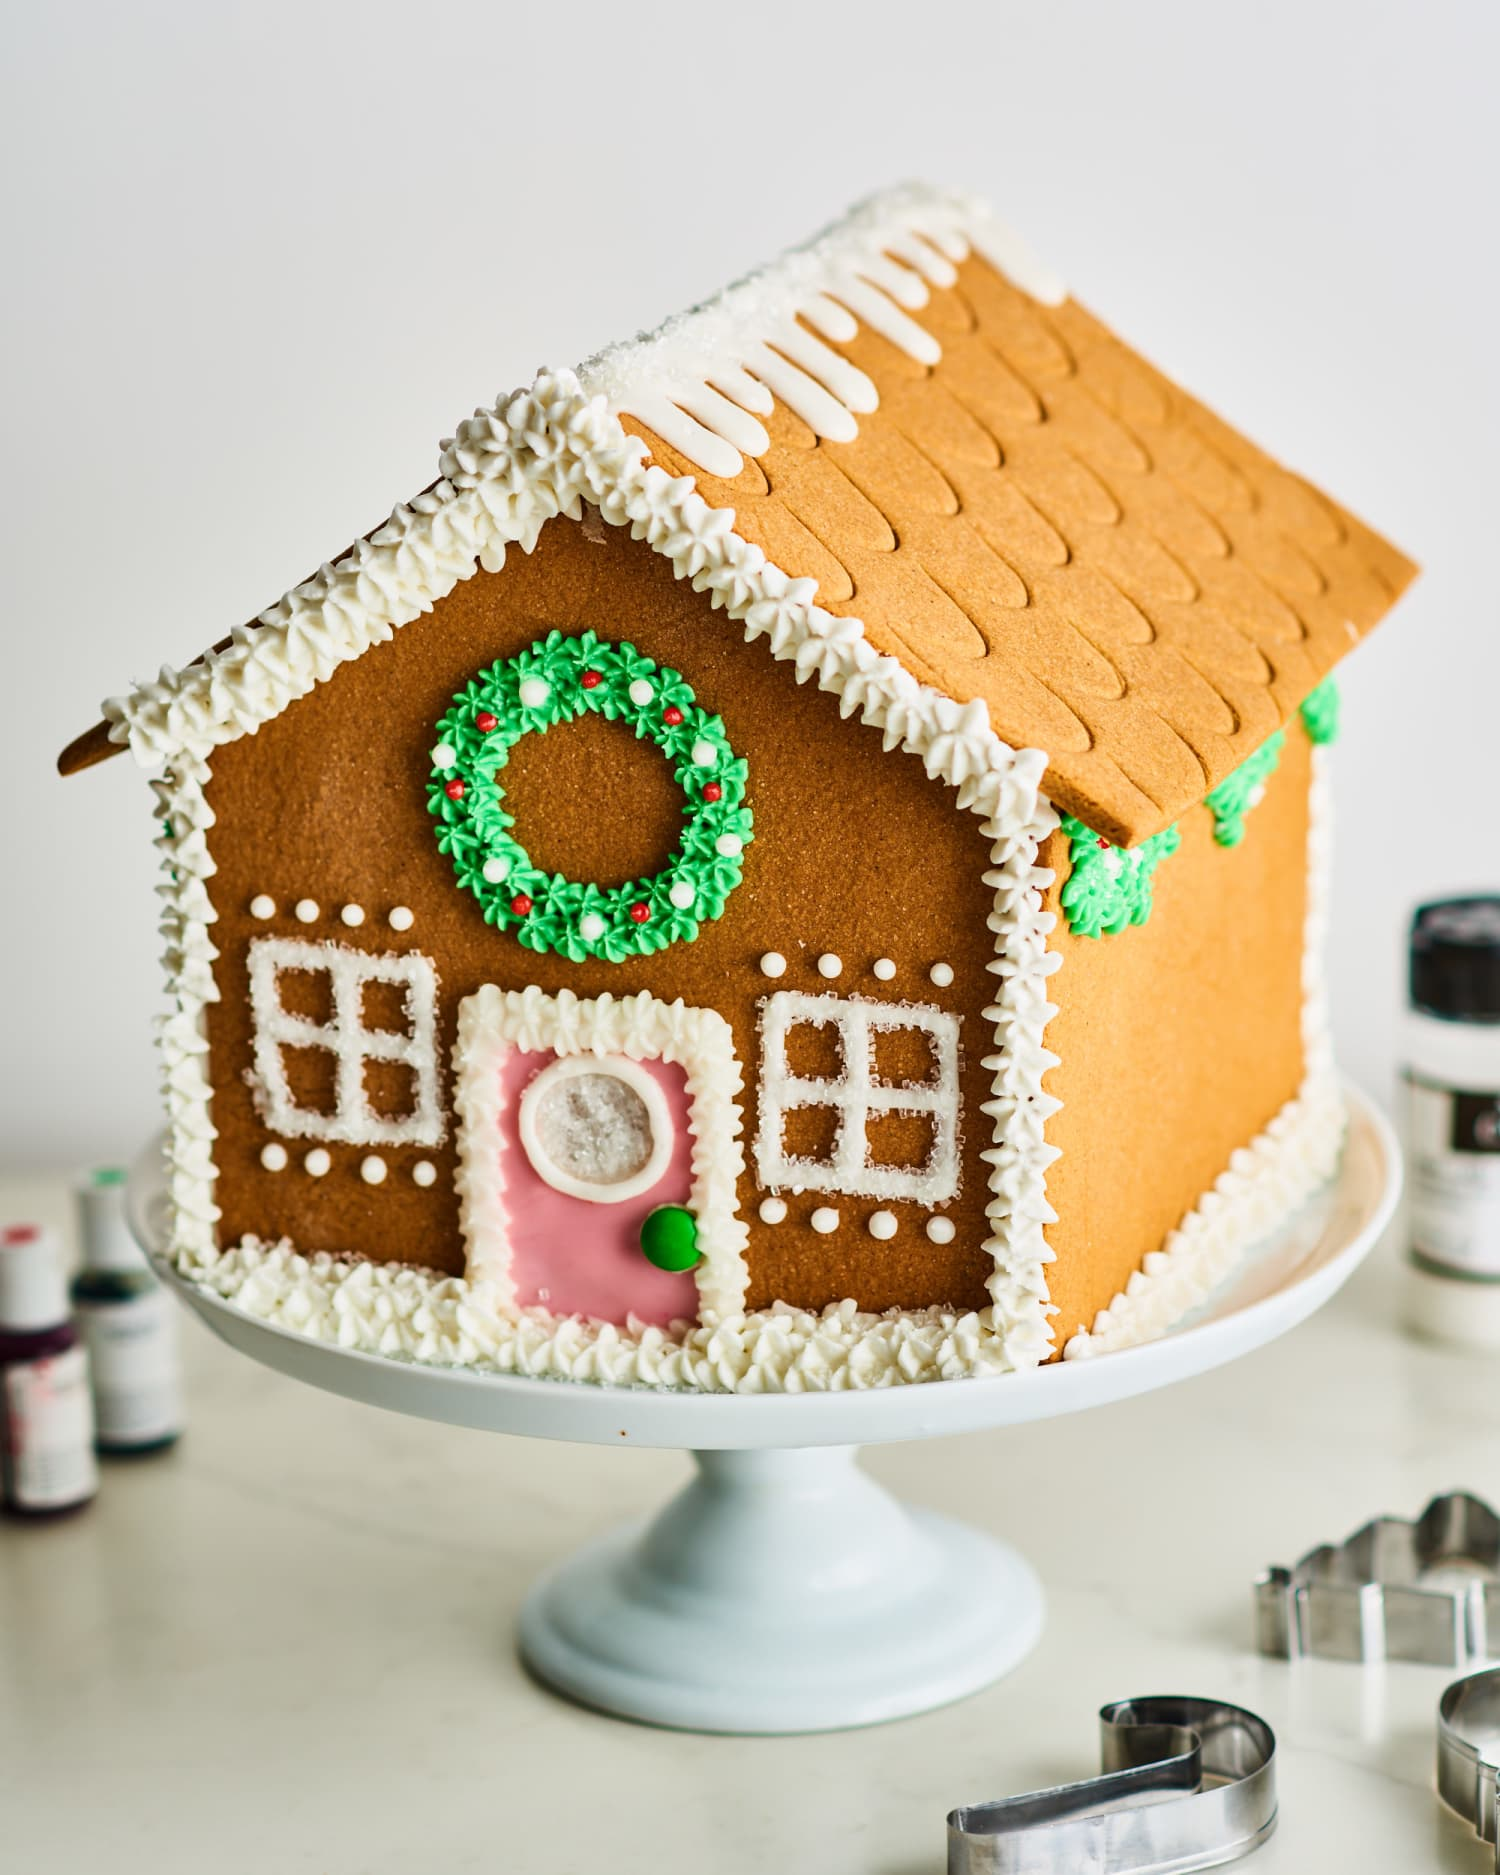 How To Make an Easy (but Still Impressive!) Gingerbread House